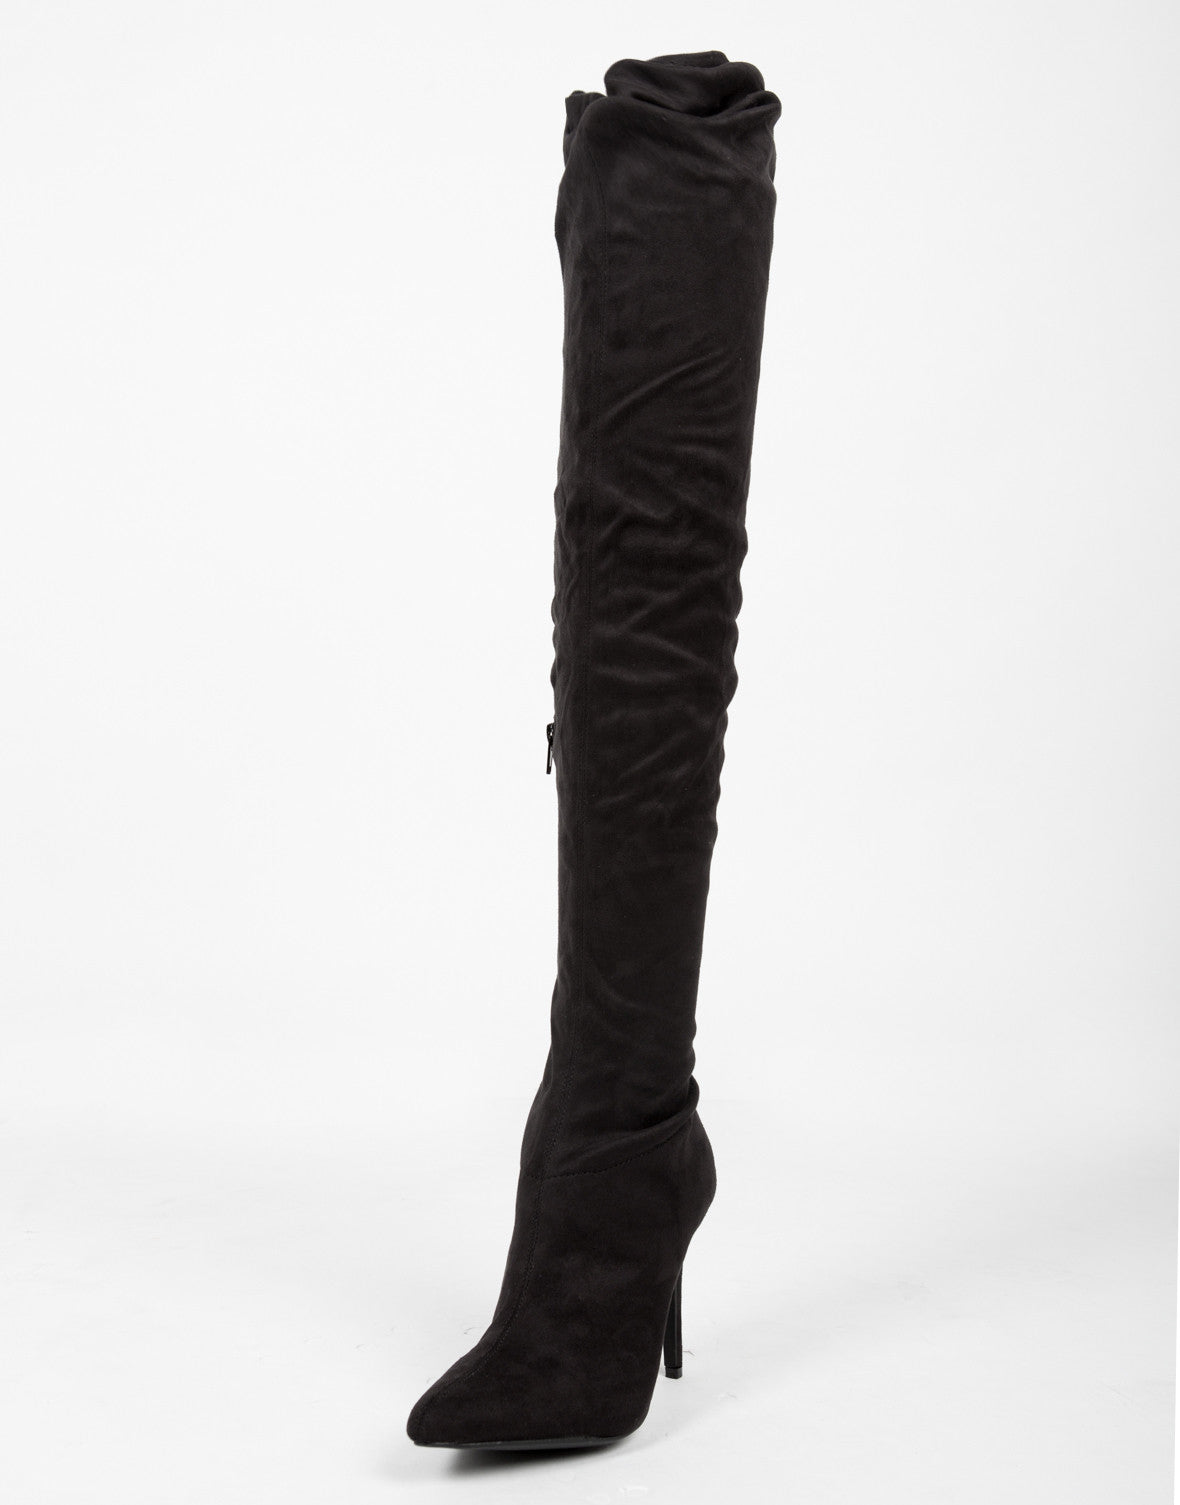 Thigh High Suede Heel Boots